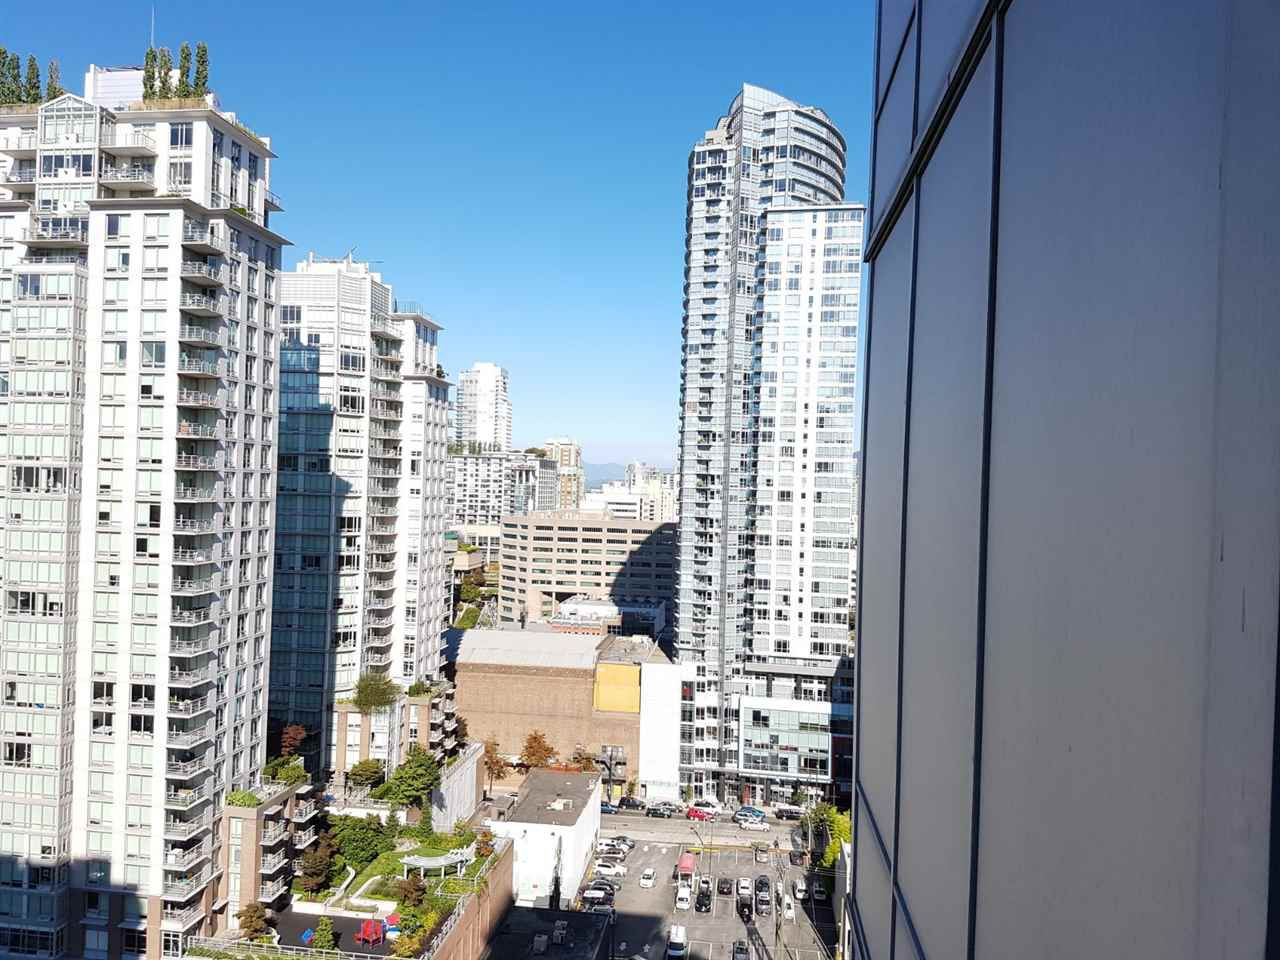 Main Photo: 2208 833 HOMER STREET in Vancouver: Downtown VW Condo for sale (Vancouver West)  : MLS®# R2200752